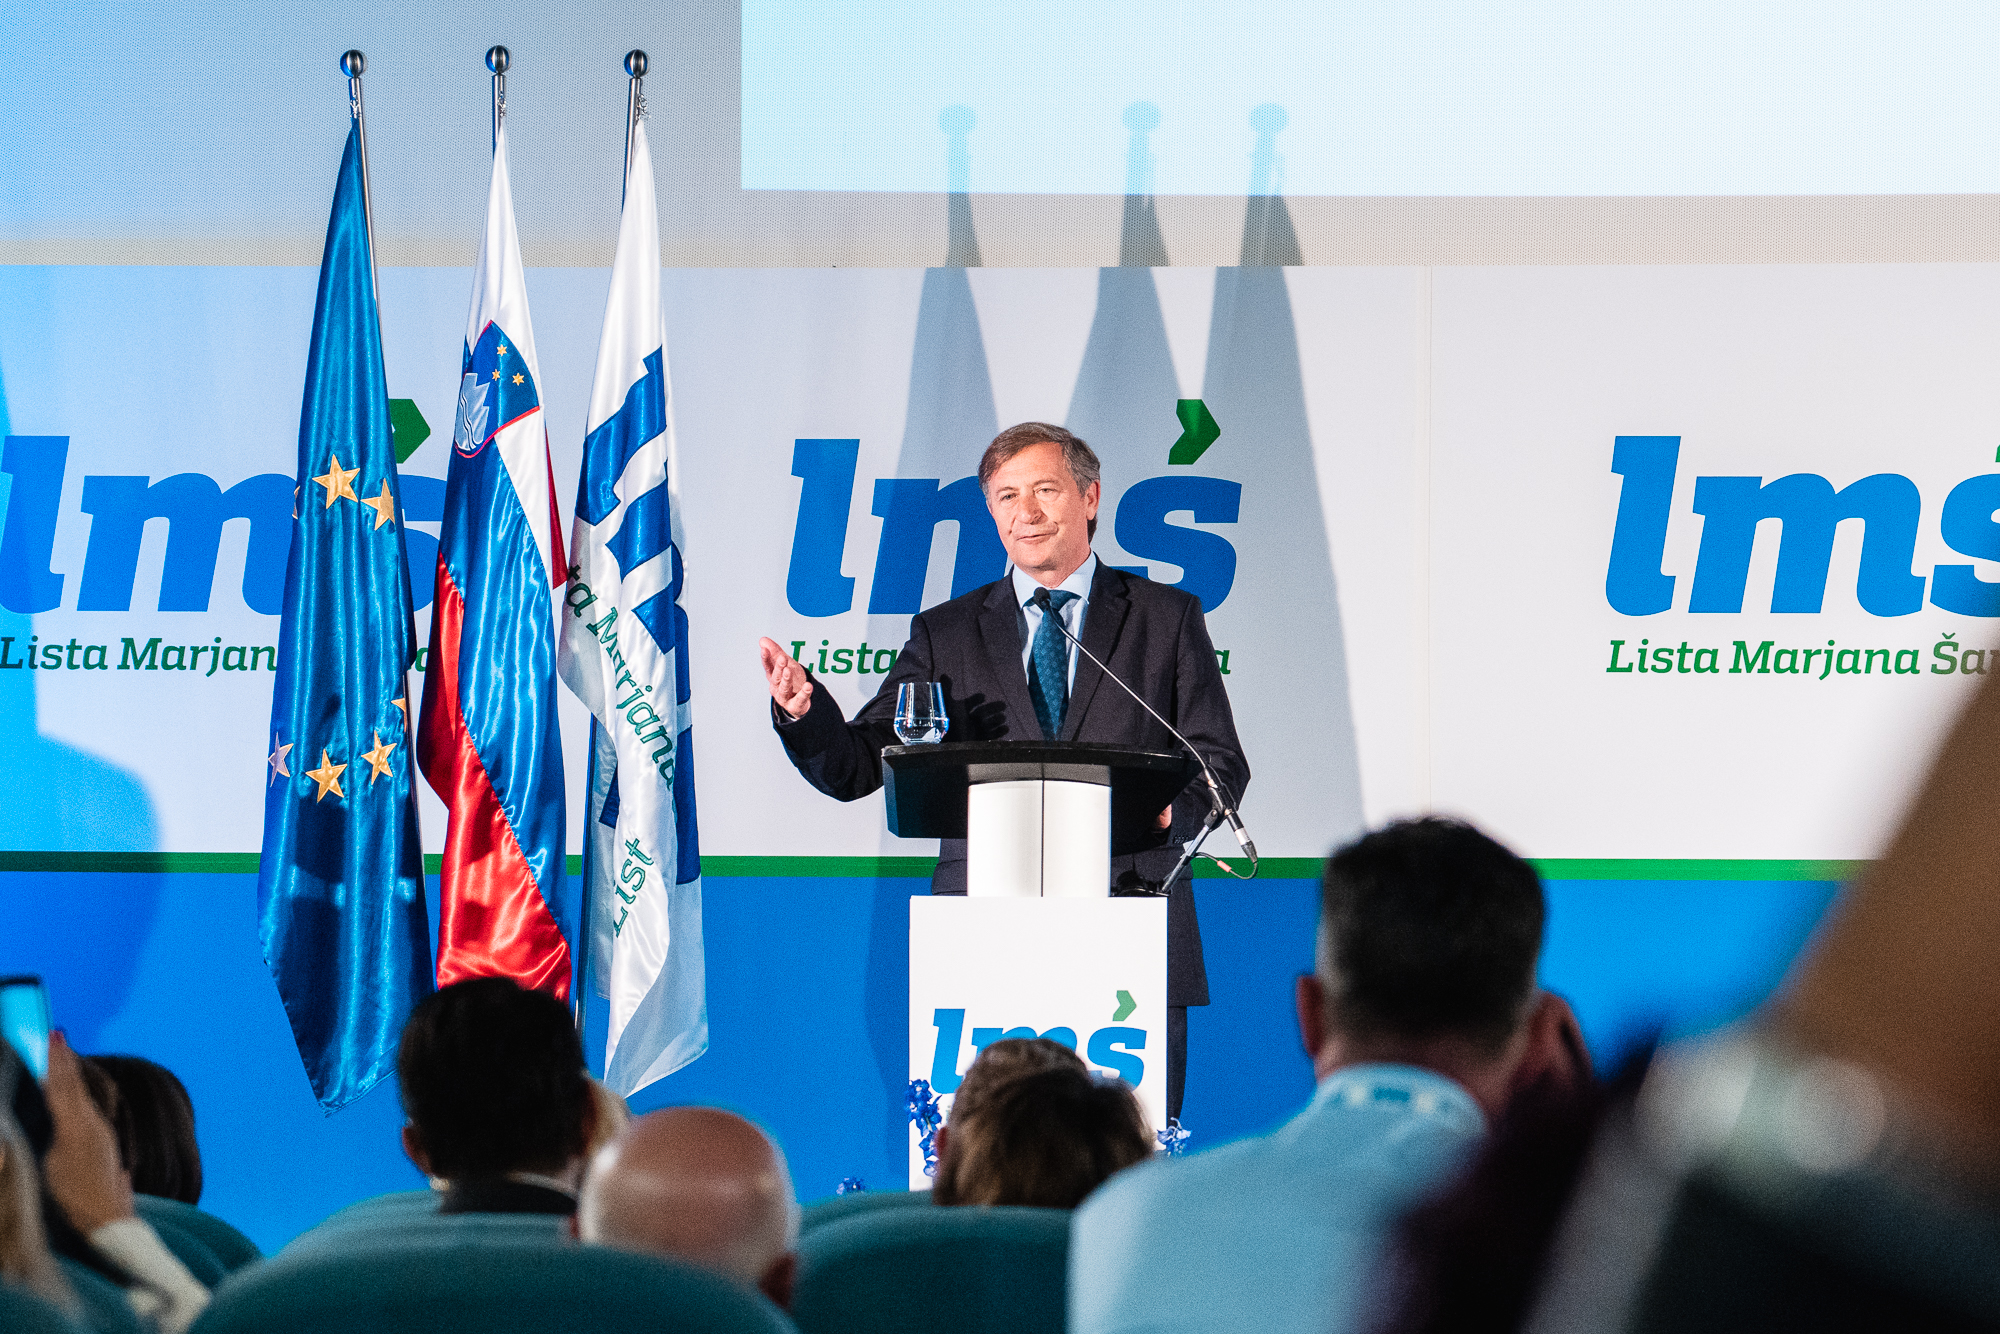 Karl Erjavec, leader of Democratic Party of Pensioners of Slovenia, on the stage at the Fifth Congress of Lista Marjana Šarca